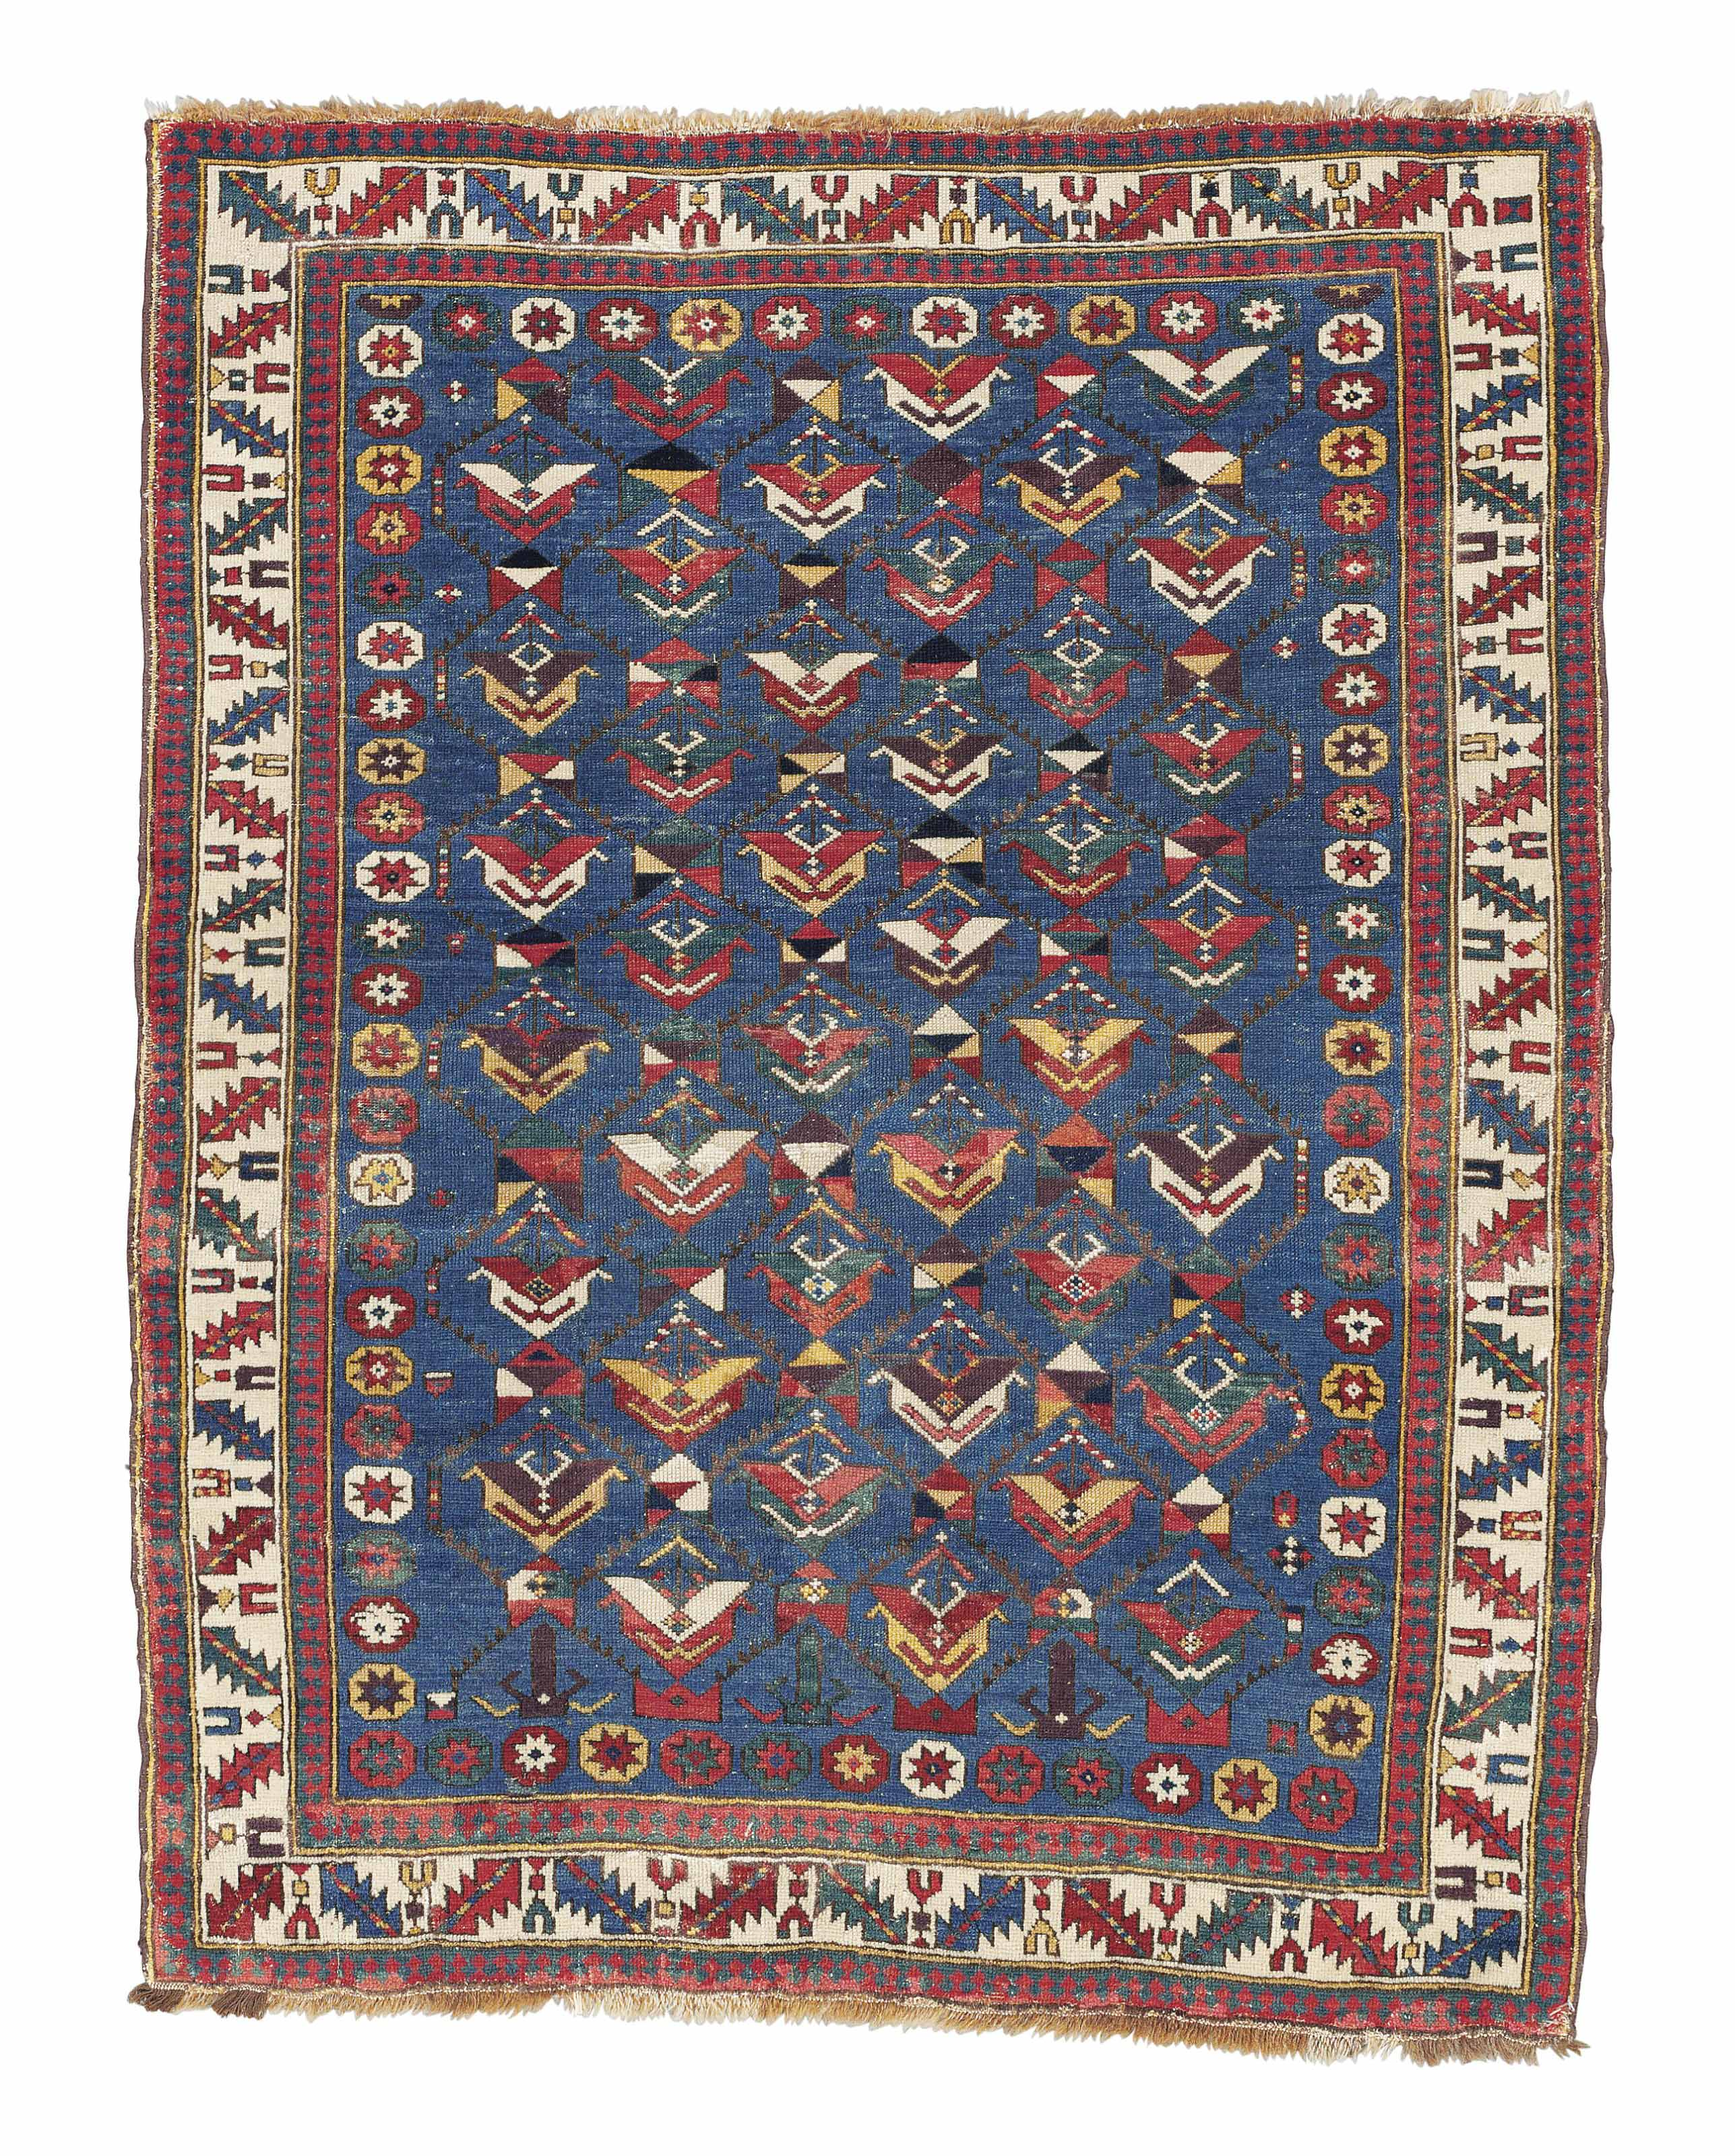 A SHIRVAN RUG , EAST CAUCASUS, EARLY 19TH CENTURY